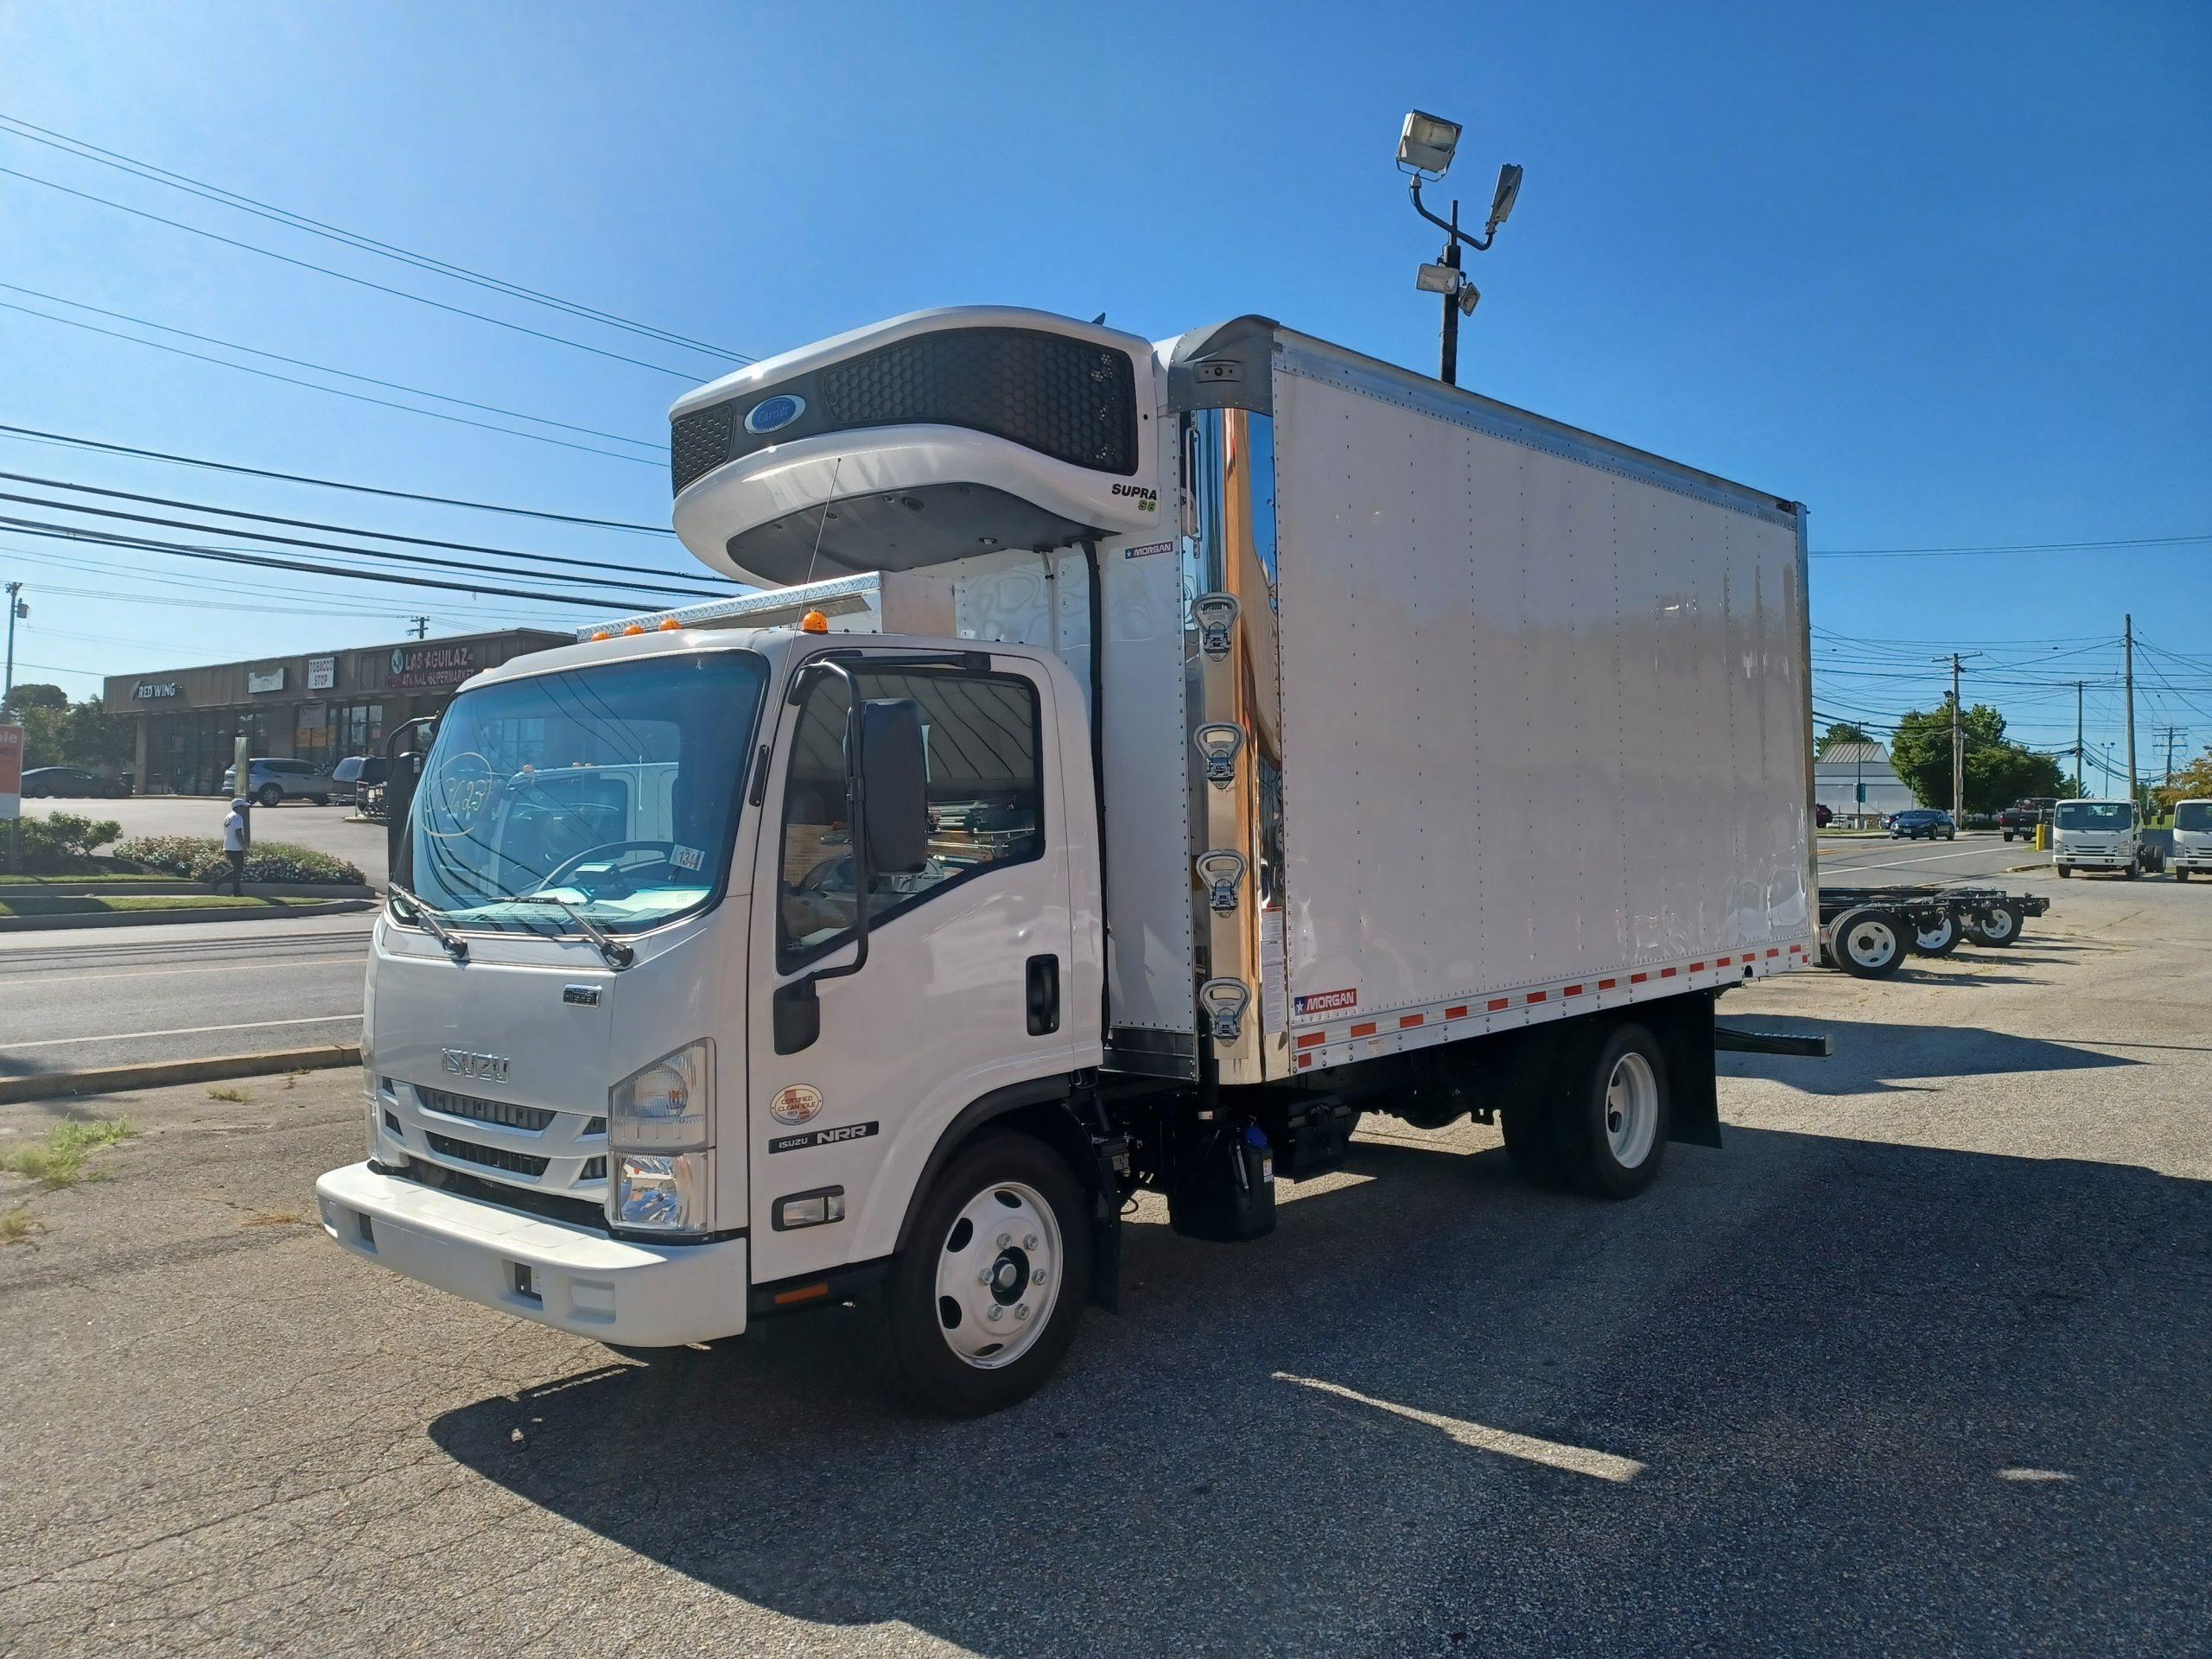 2022 NRR Refrigerated Truck Diesel 3 year Unlimited Mile Warranty 20210903_094450-scaled